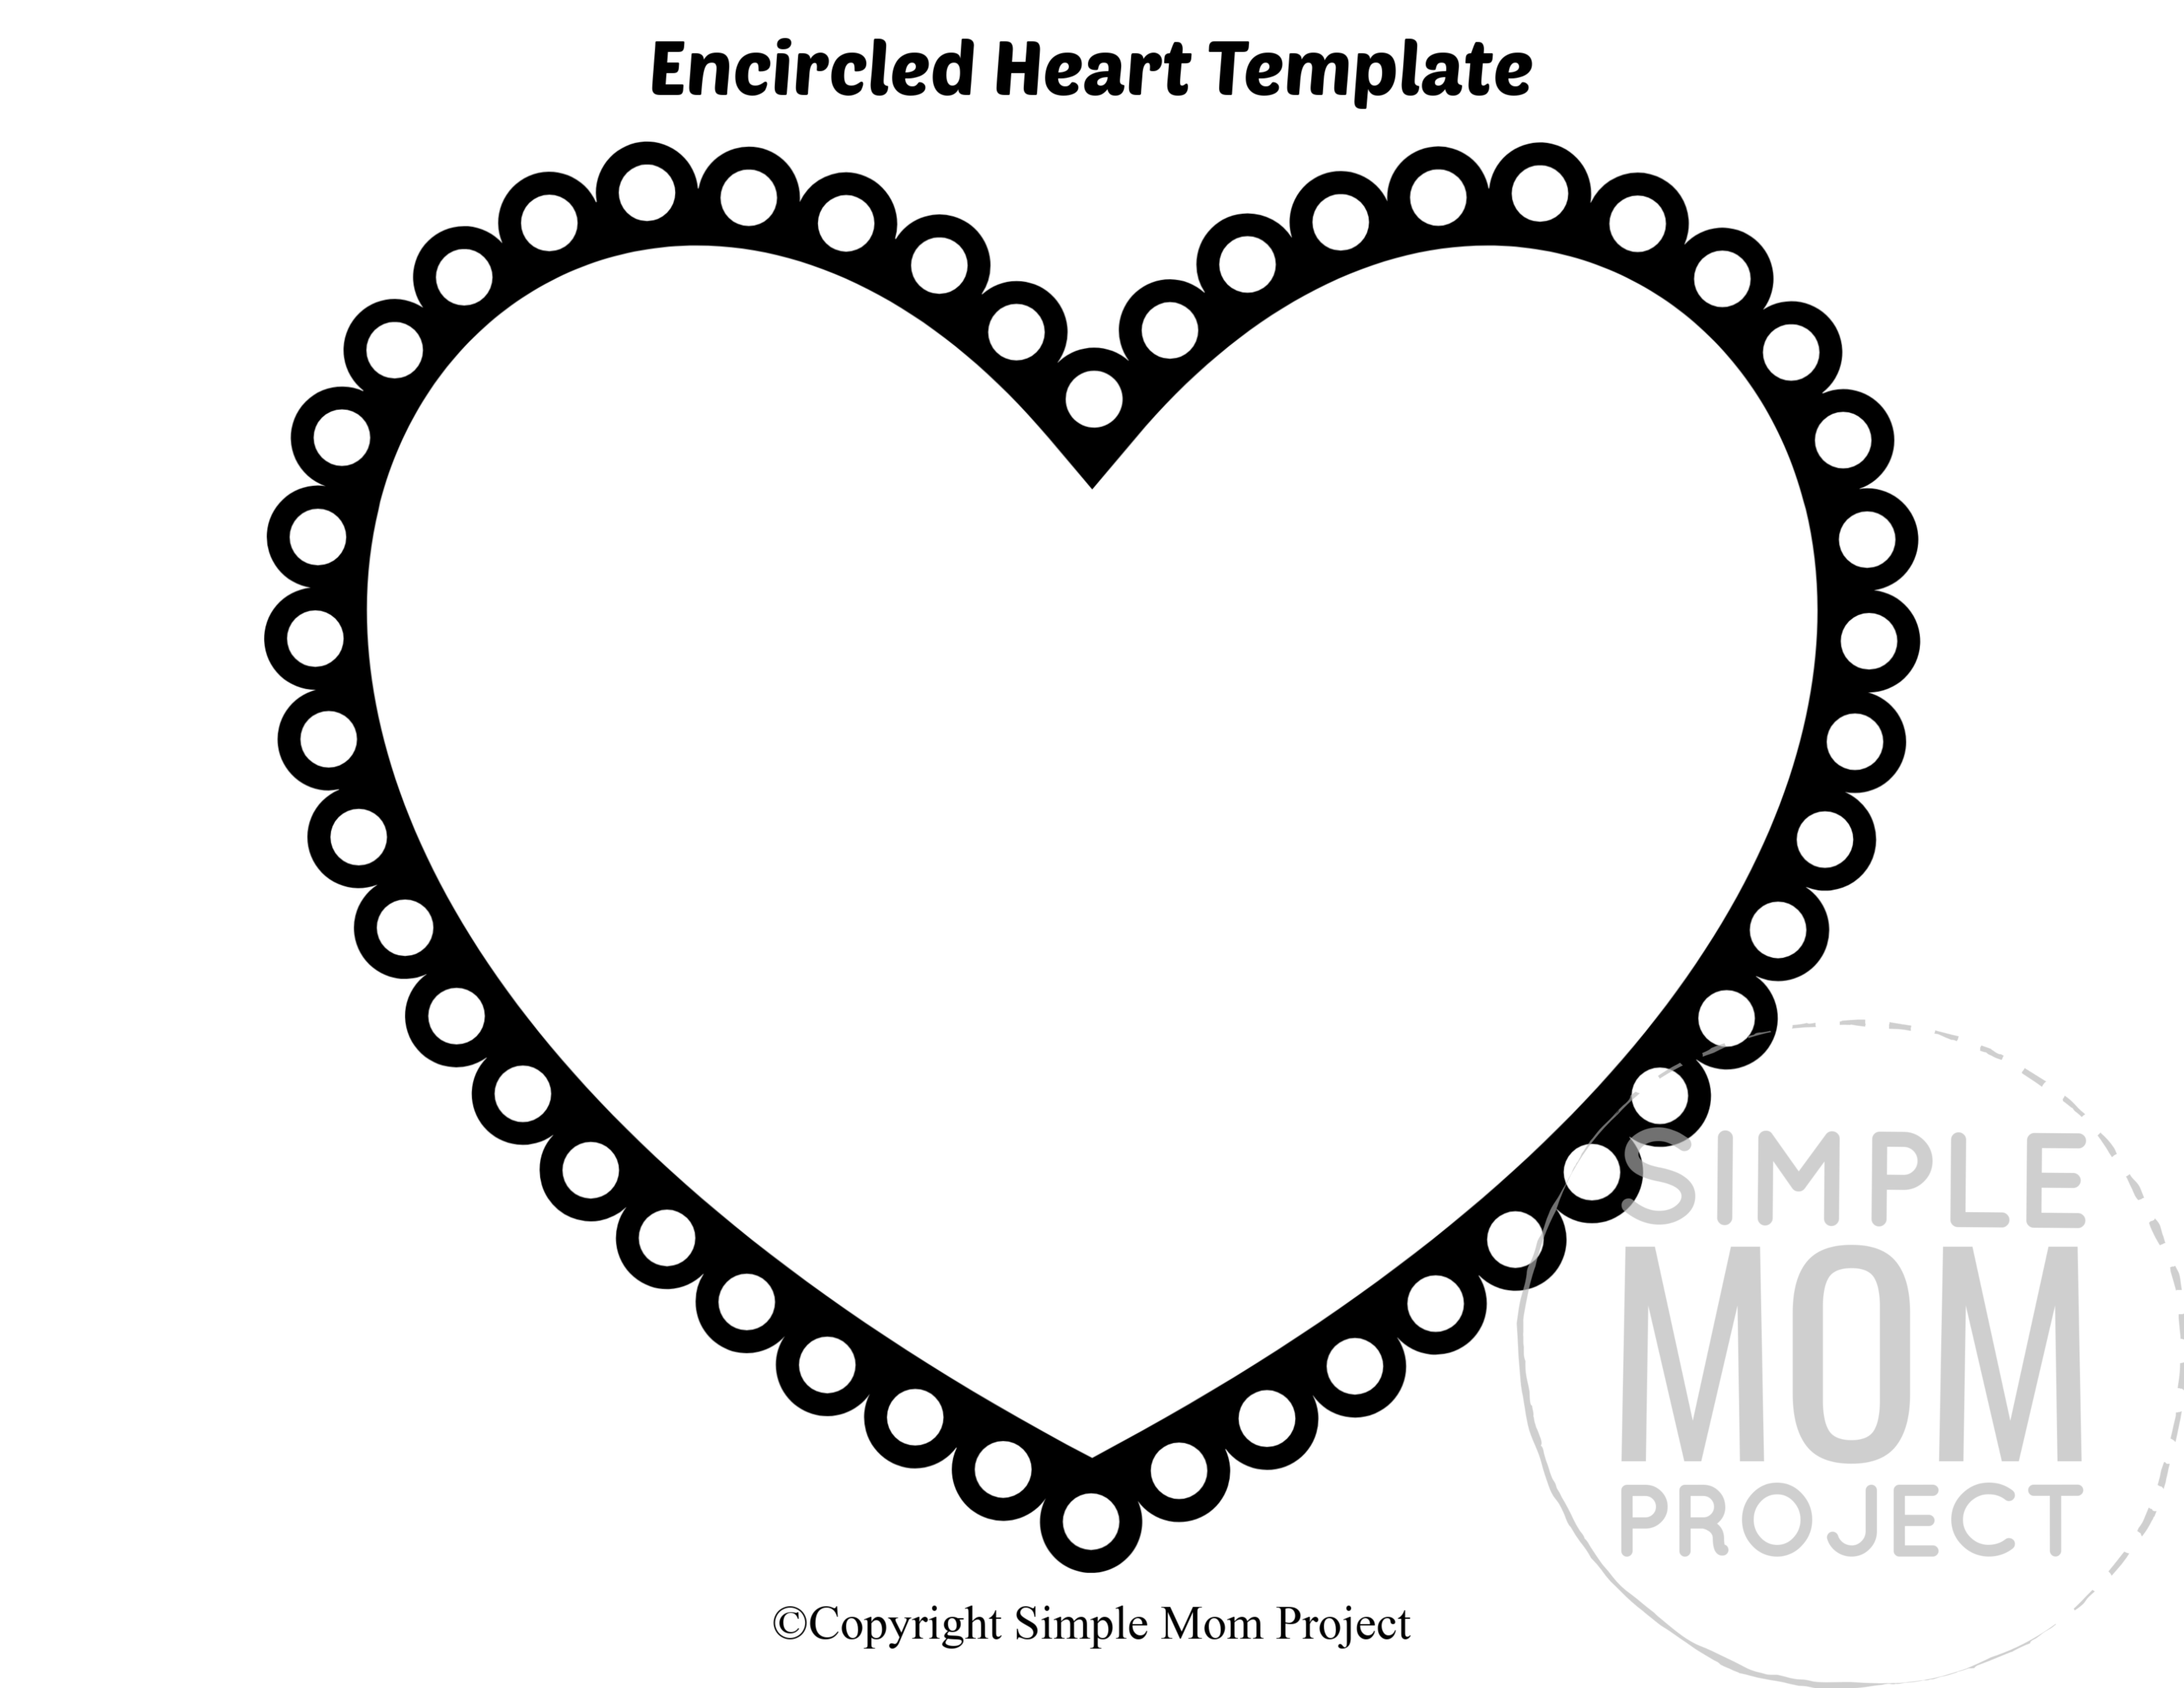 Encircled Large Heart Shaped Template Full Page Cutout outline stencil